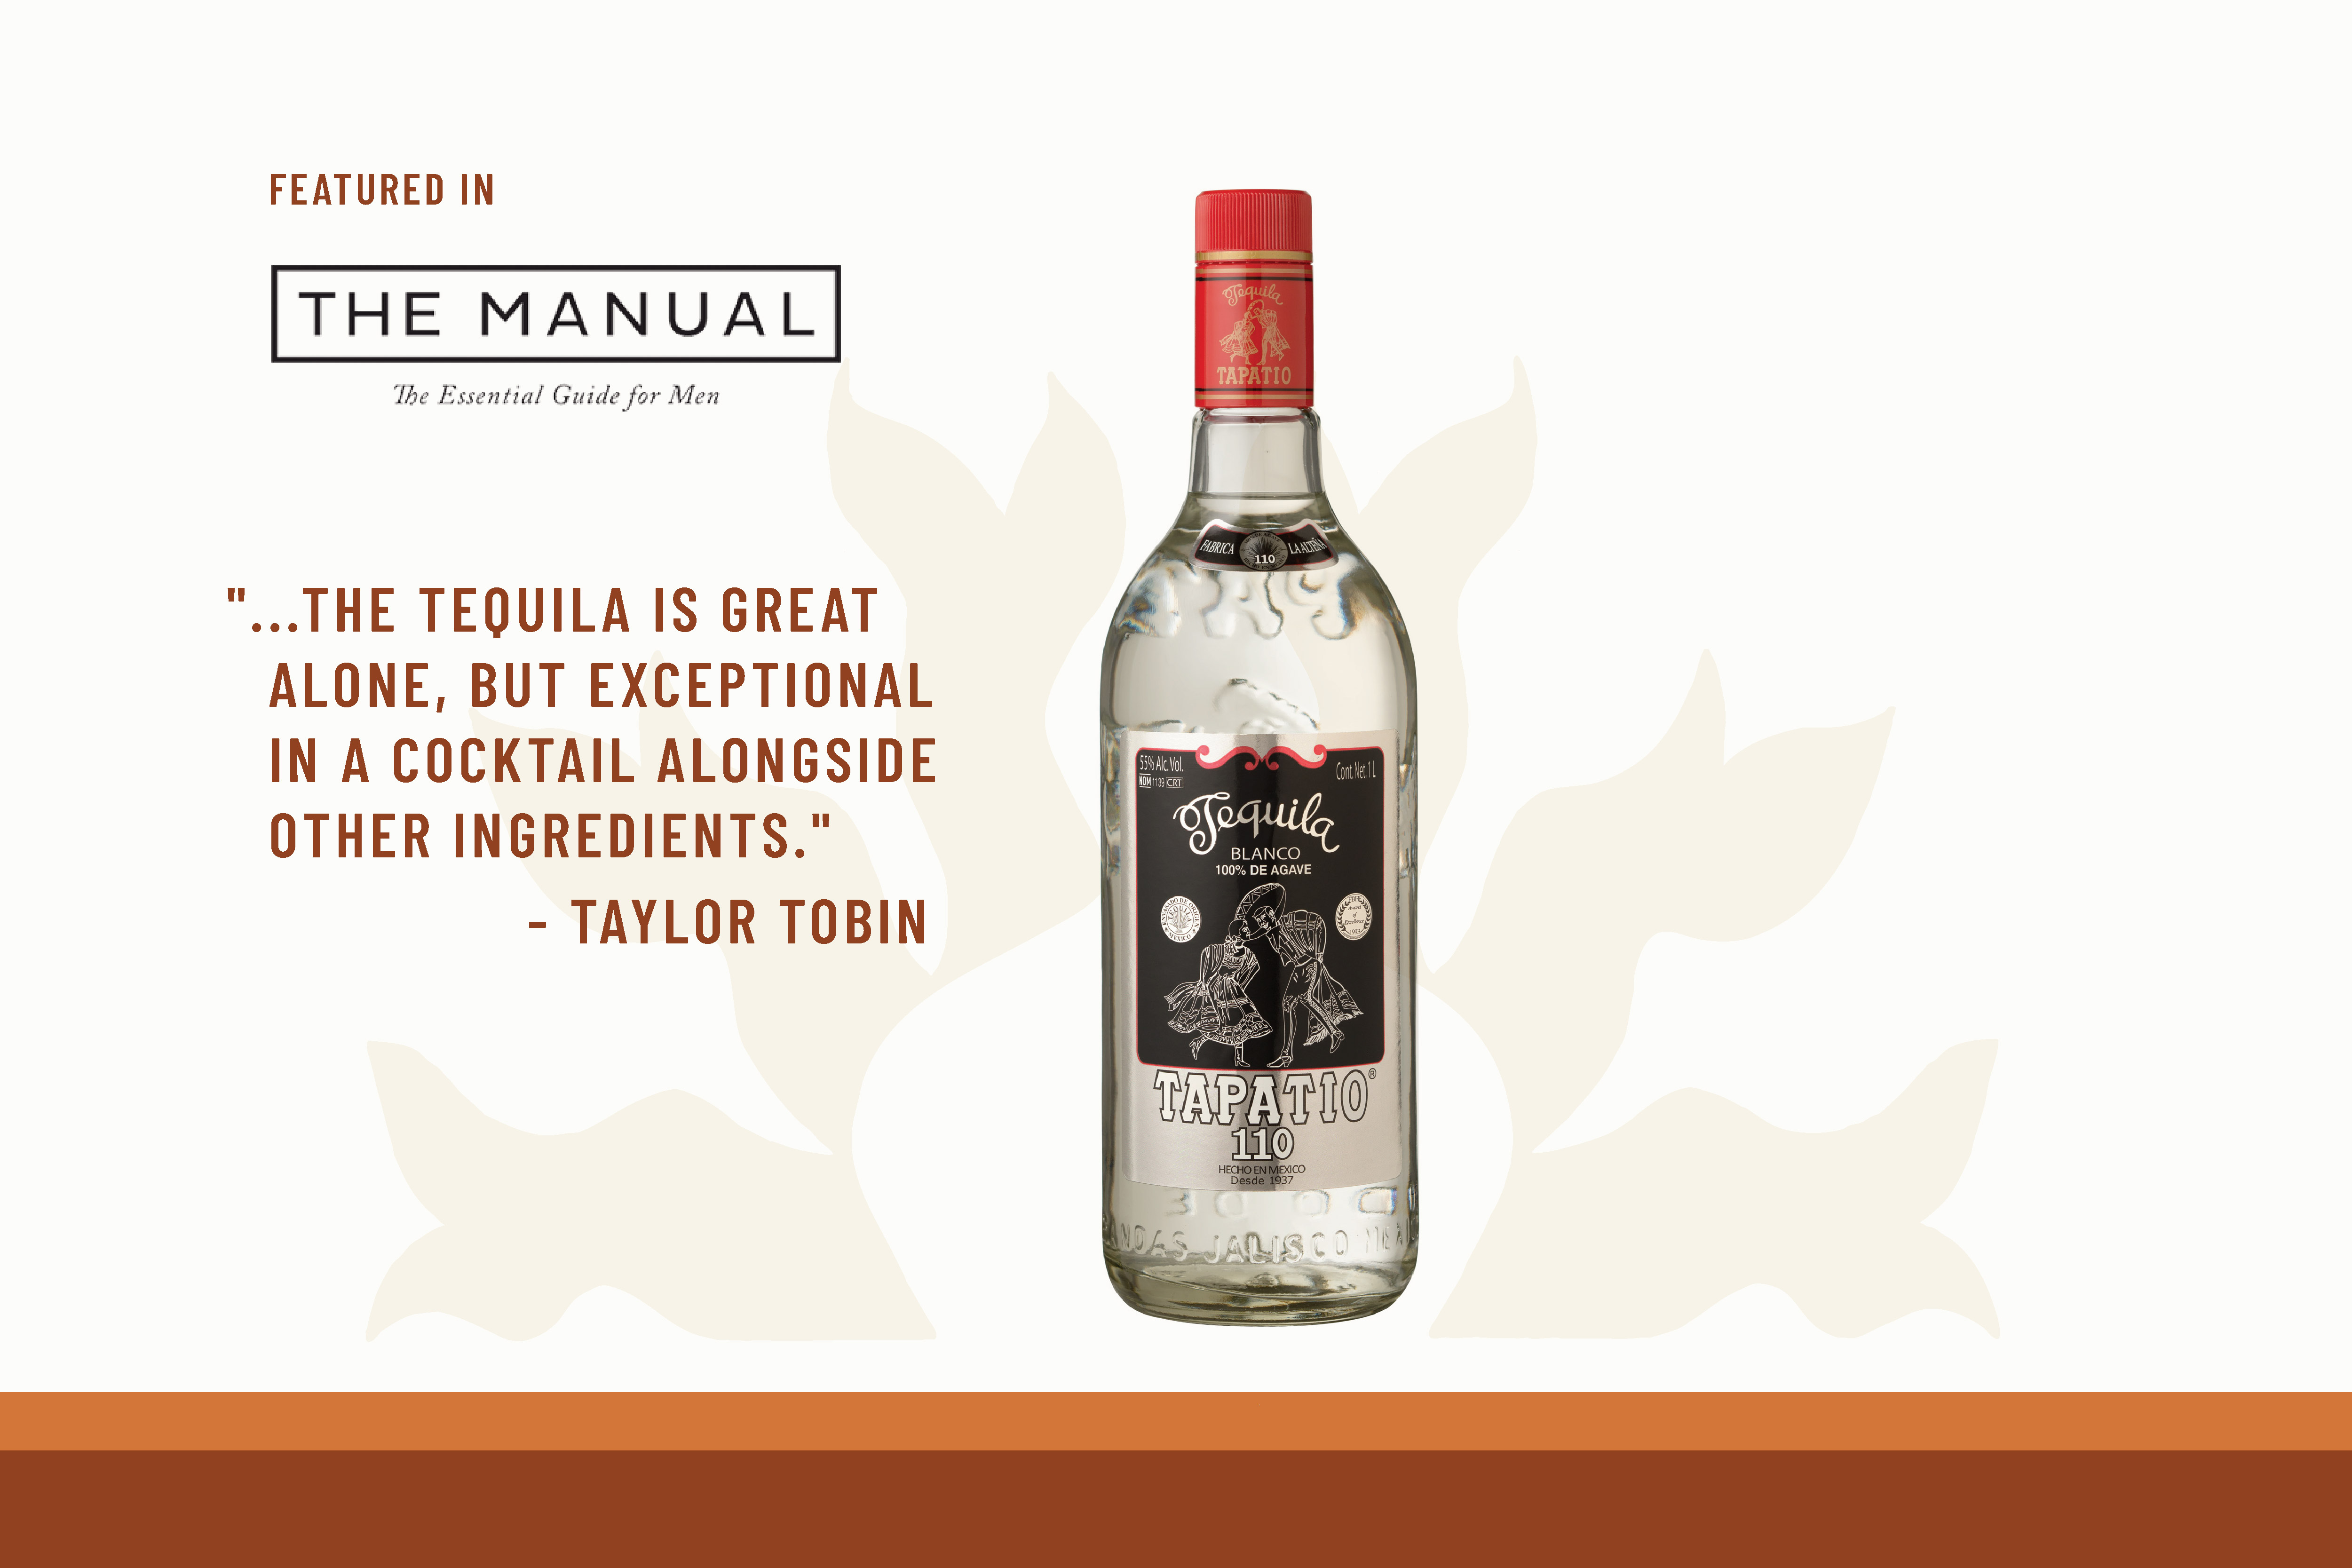 Tequila Tapatio Blanco 110 Article